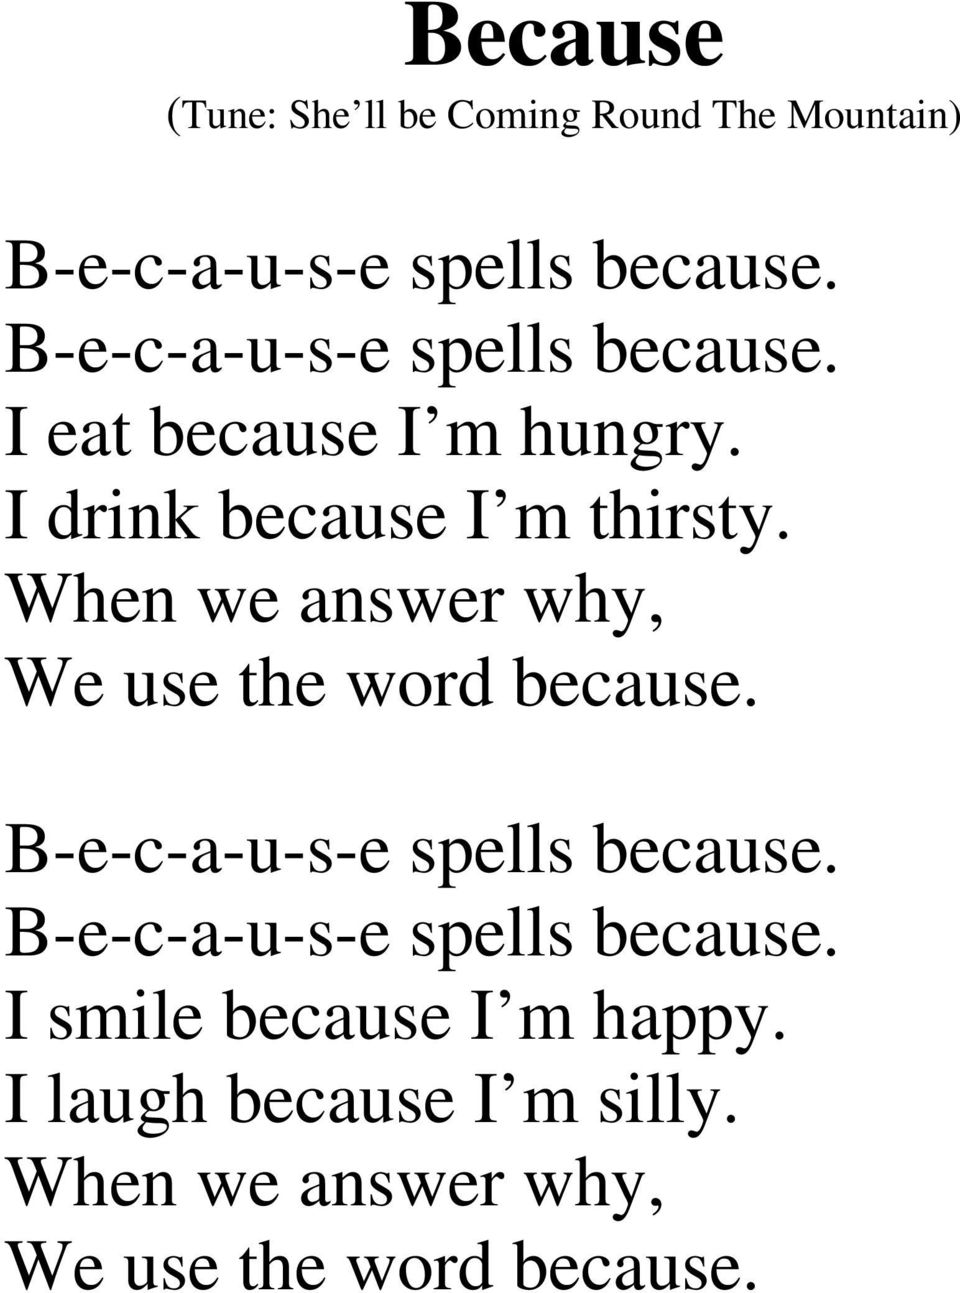 When we answer why, We use the word because. B-e-c-a-u-s-e spells because.